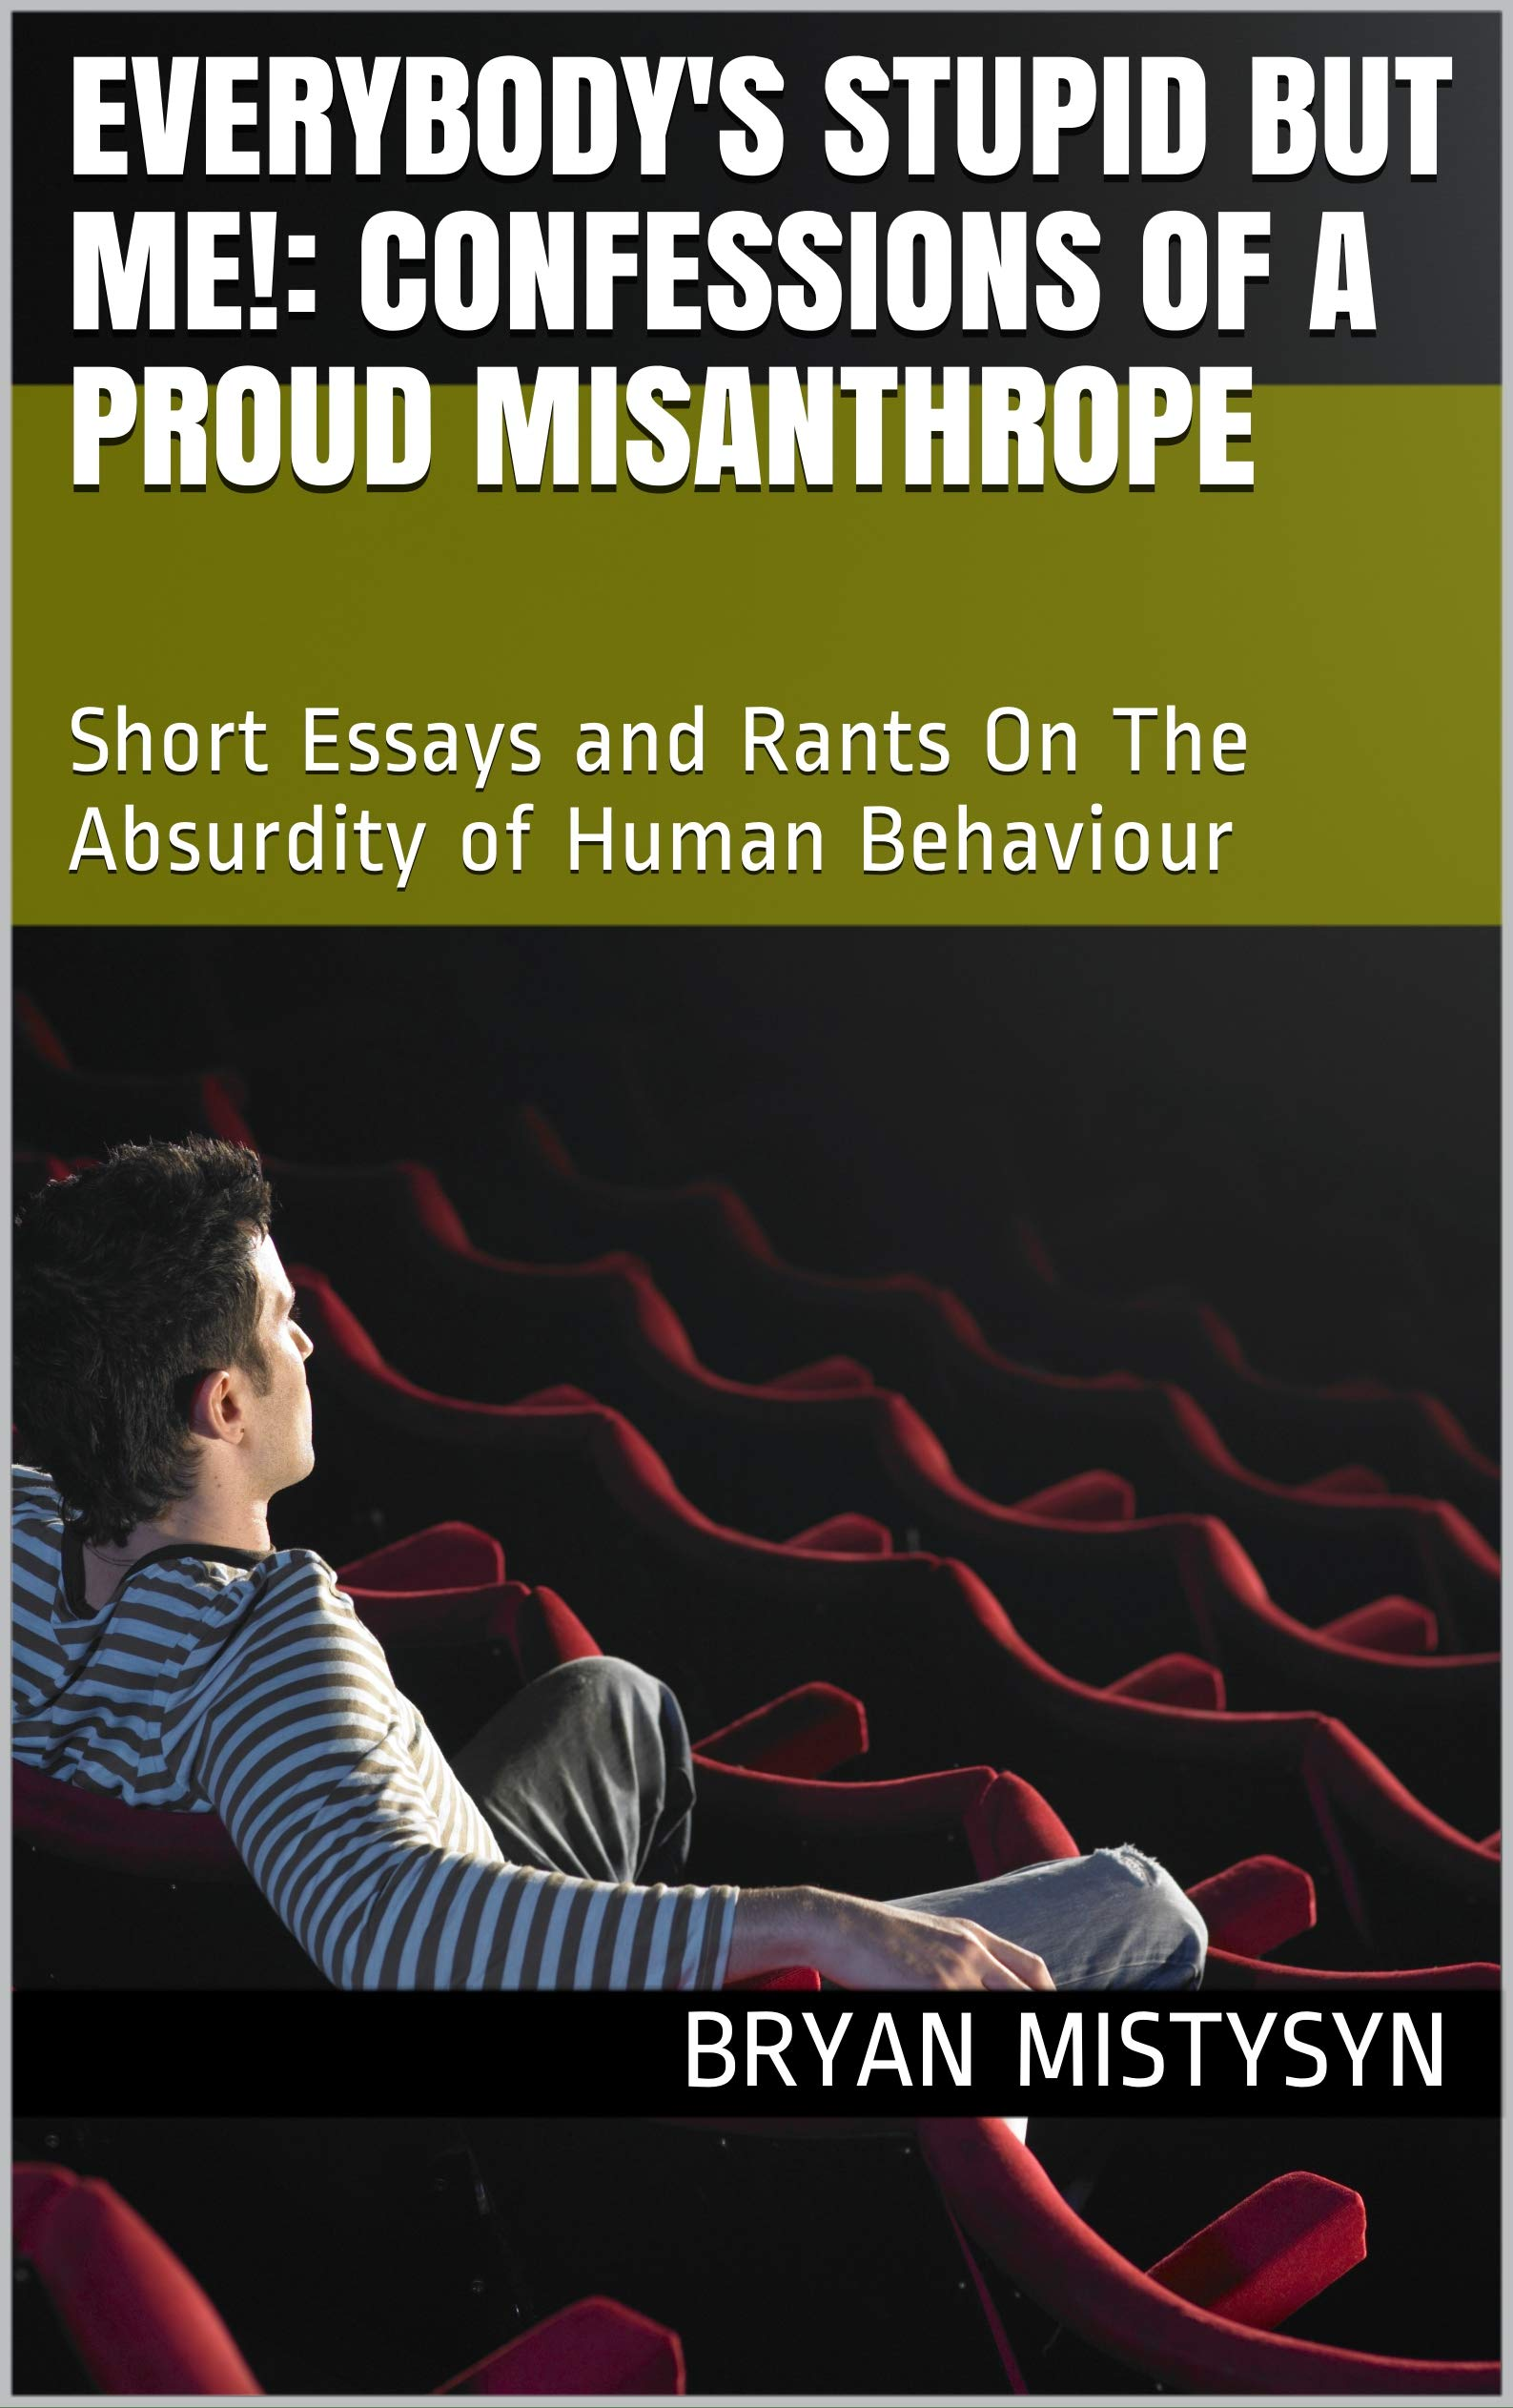 Everybody's Stupid But Me!: Confessions of a Proud Misanthrope: Short Essays and Rants On The Absurdity of Human Behaviour